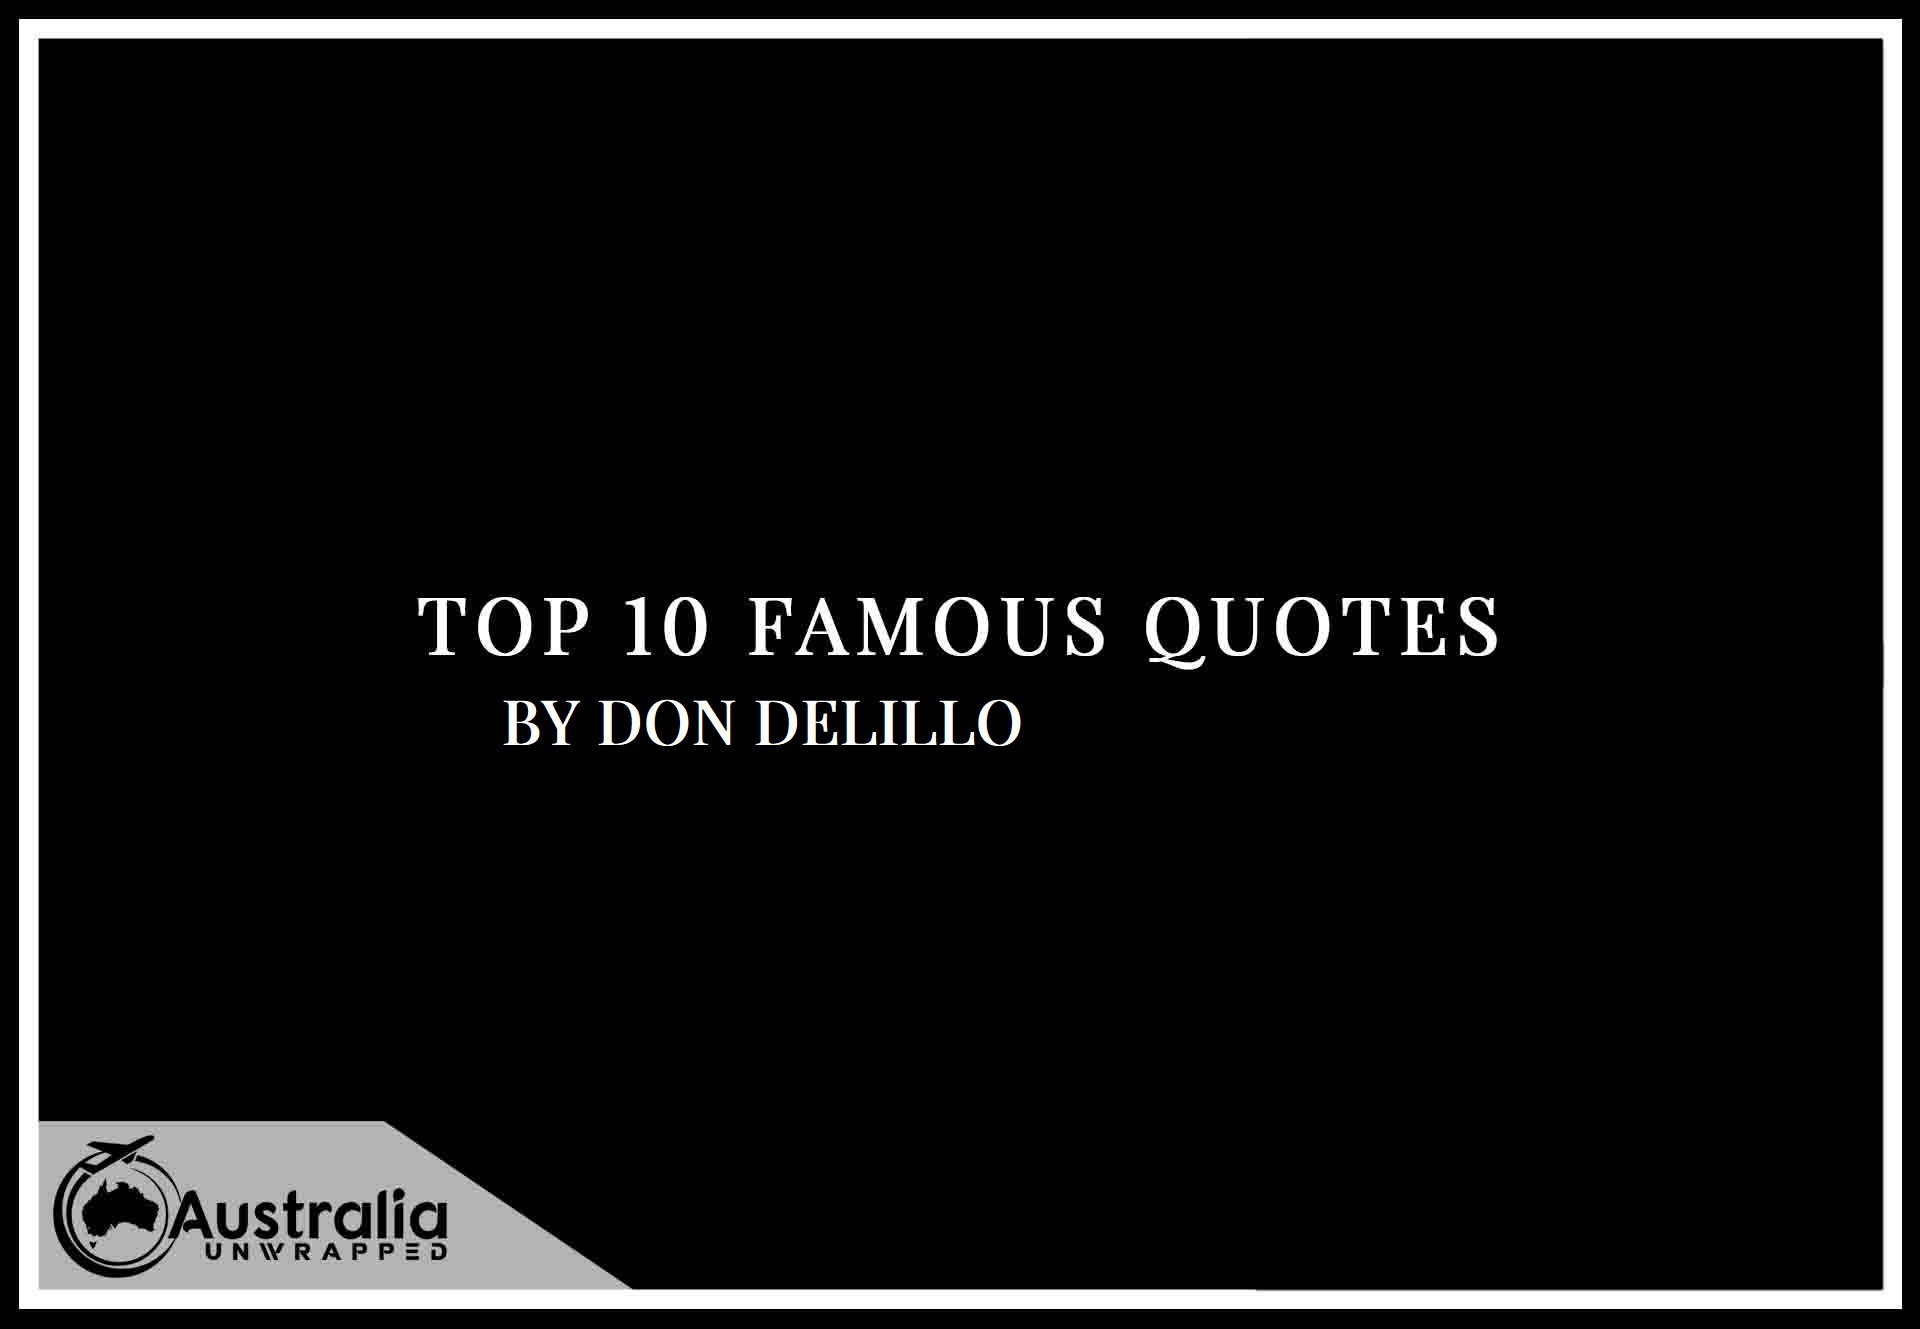 Top 10 Famous Quotes by Author Don DeLillo